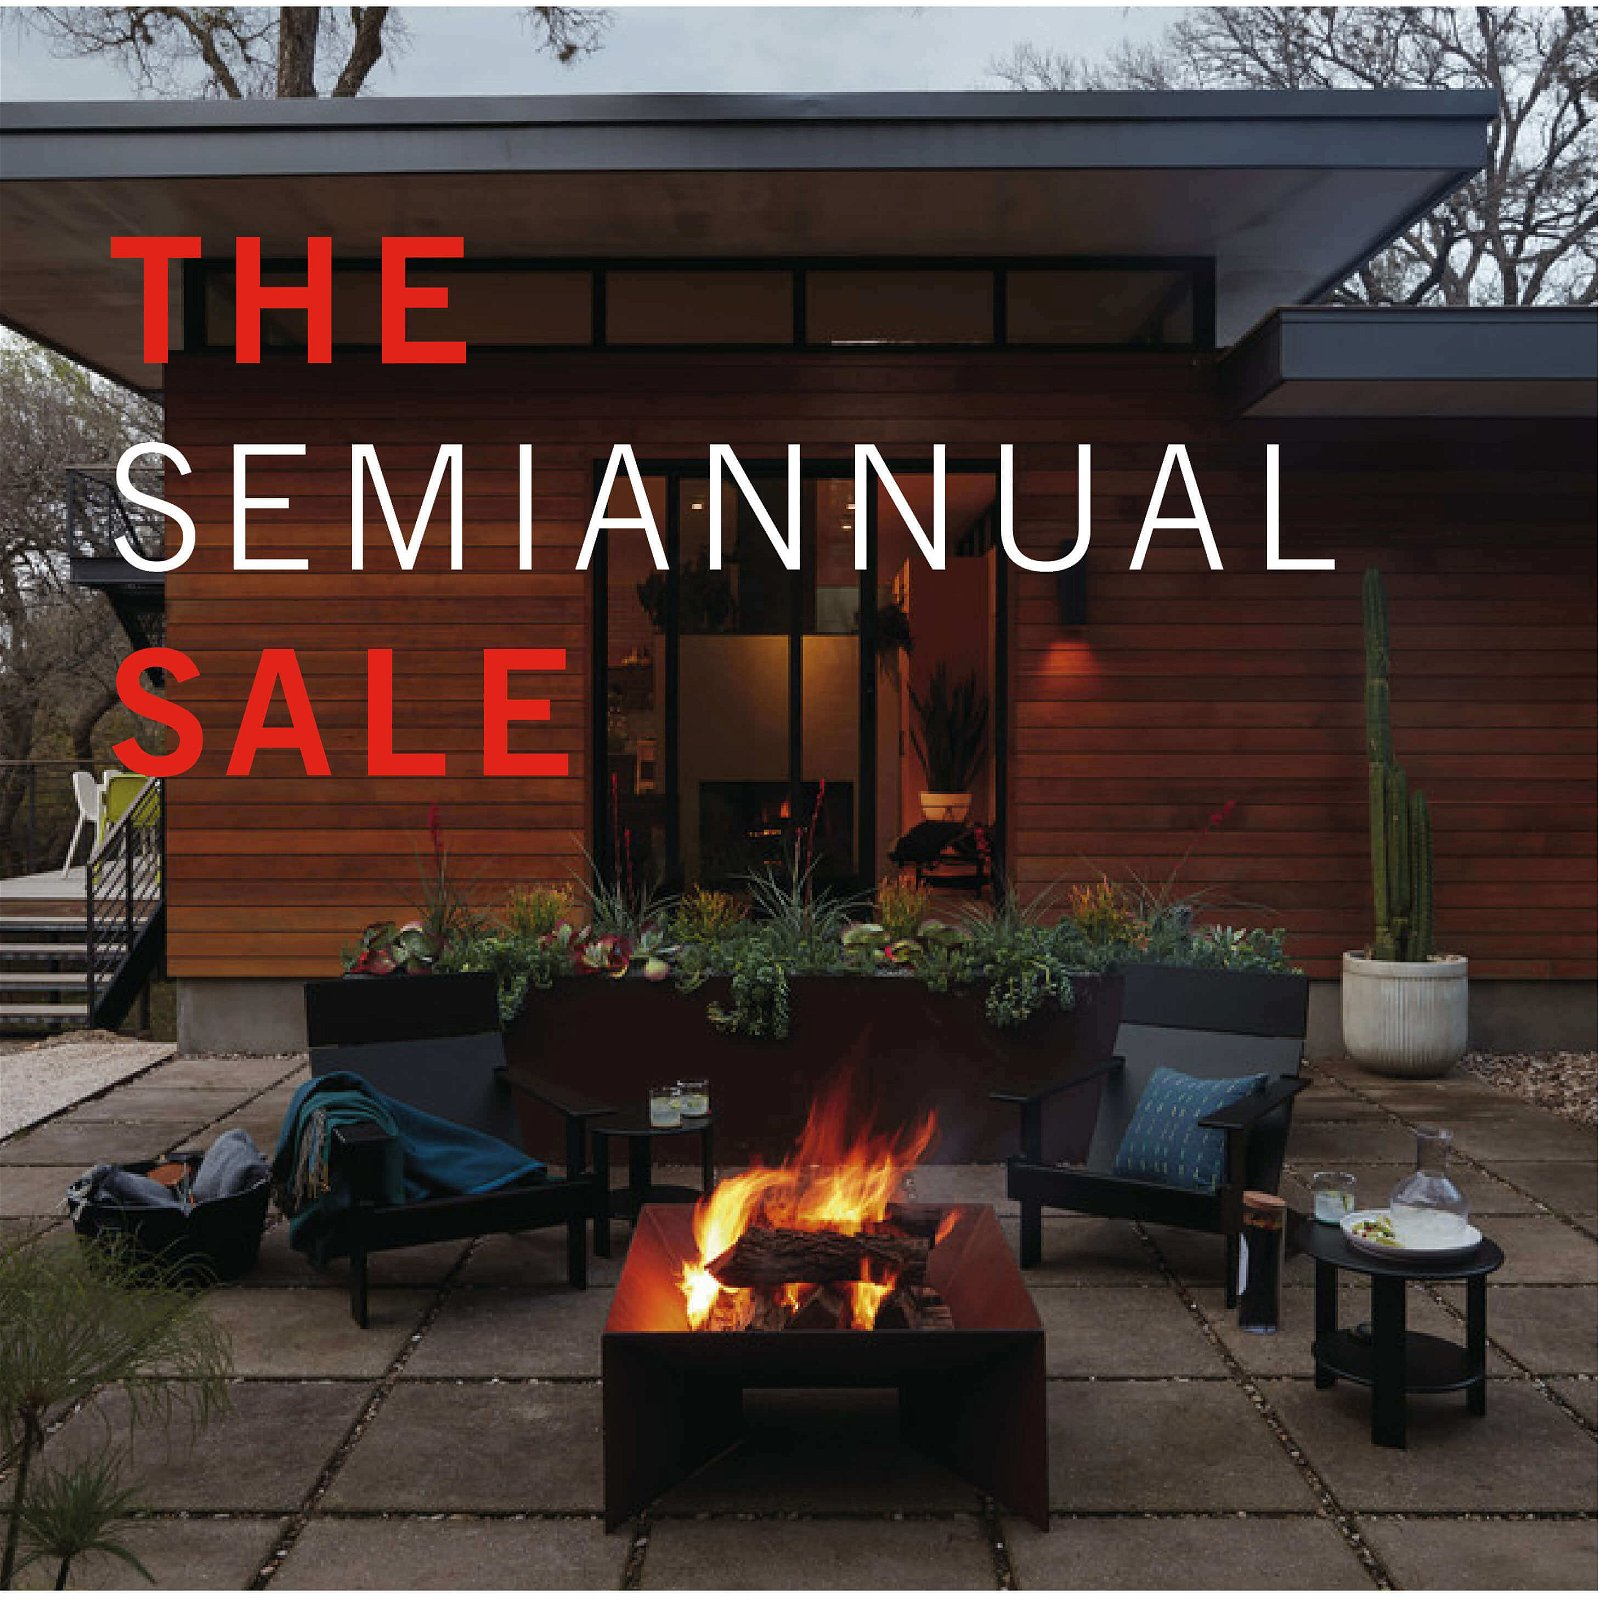 The Semiannual Sale